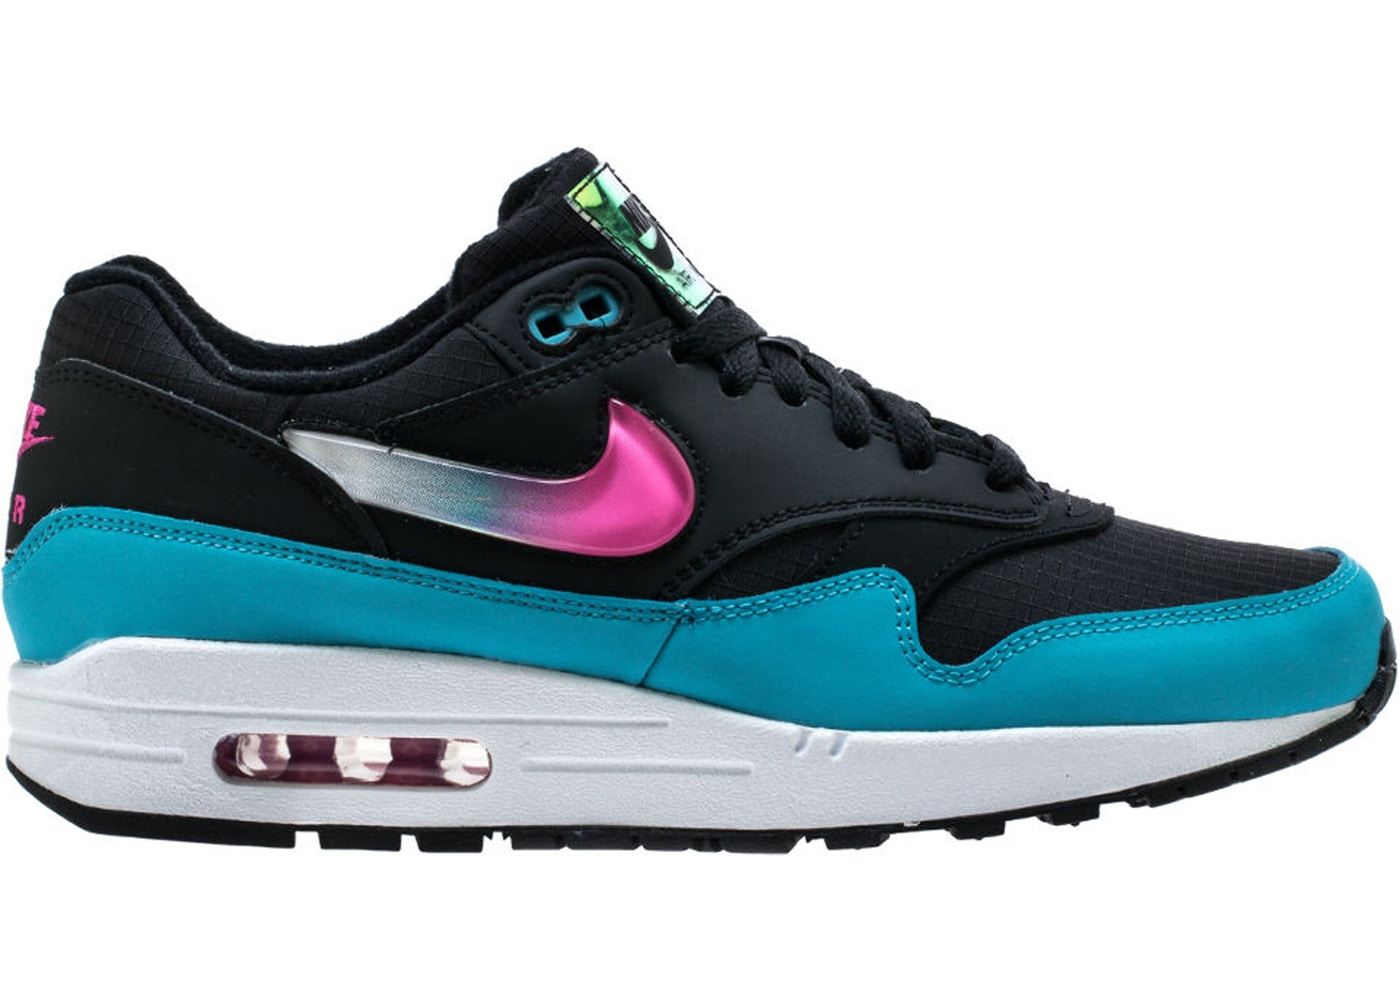 new style e93e7 3eae8 Buy Nike Air Max 1 Shoes   Deadstock Sneakers